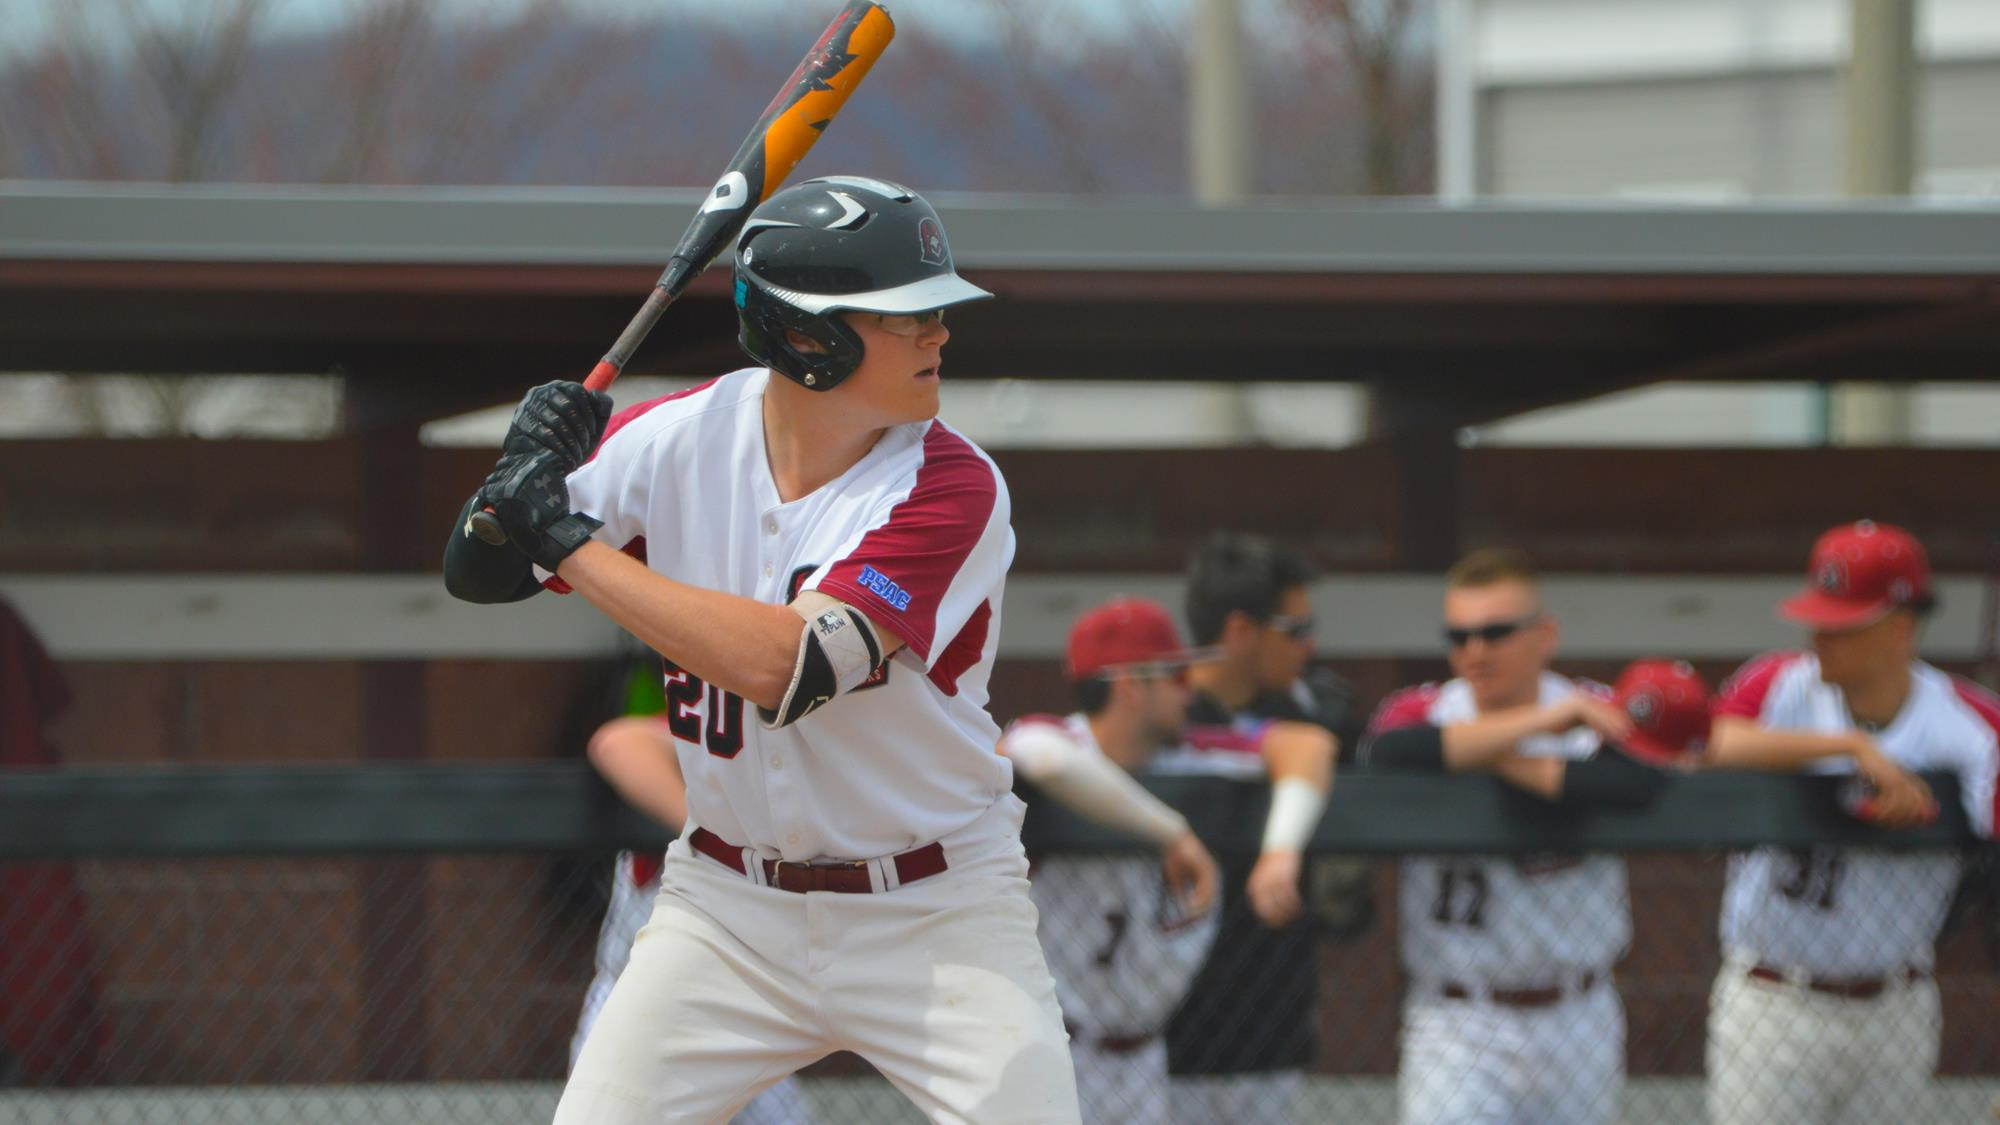 Toronto Mets alum Ben Teplin (Richmond Hill, Ont.) had five hits, four runs and four RBIs in three games for the IUP Crimson Hawks. Photo: IUP Athletics